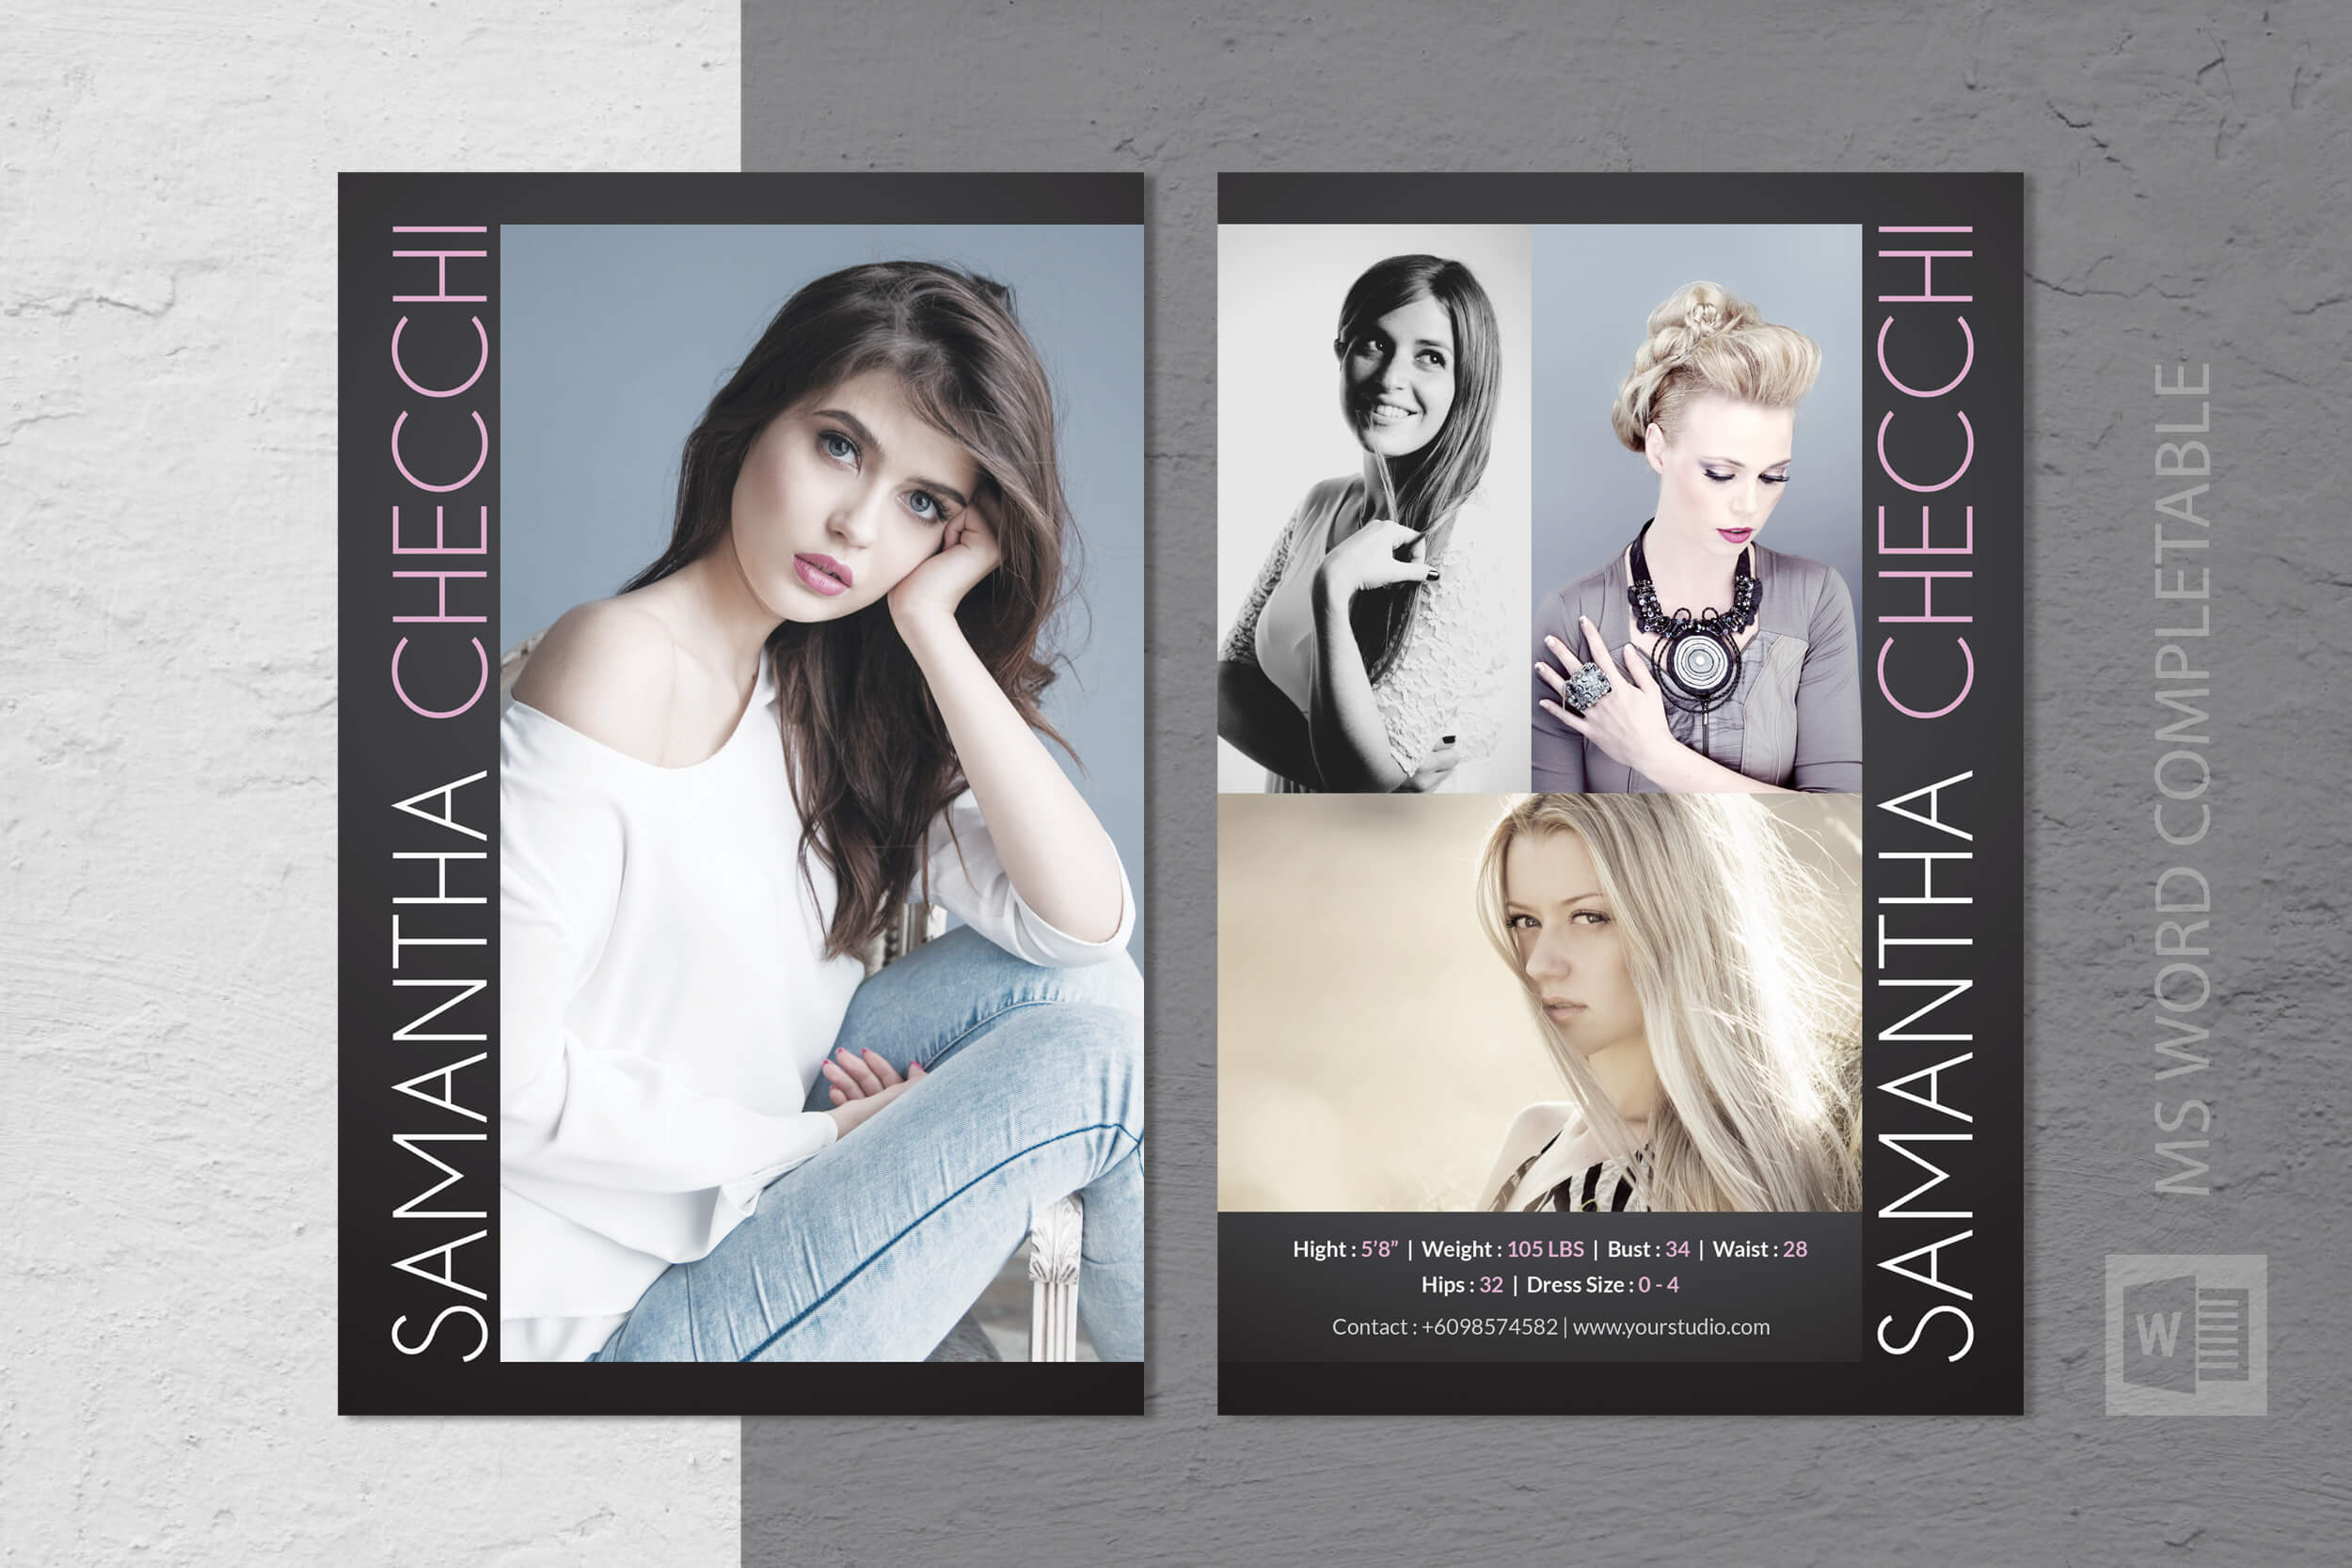 015 Model Comp Card Template Ideas Outstanding Psd Free Regarding Model Comp Card Template Free